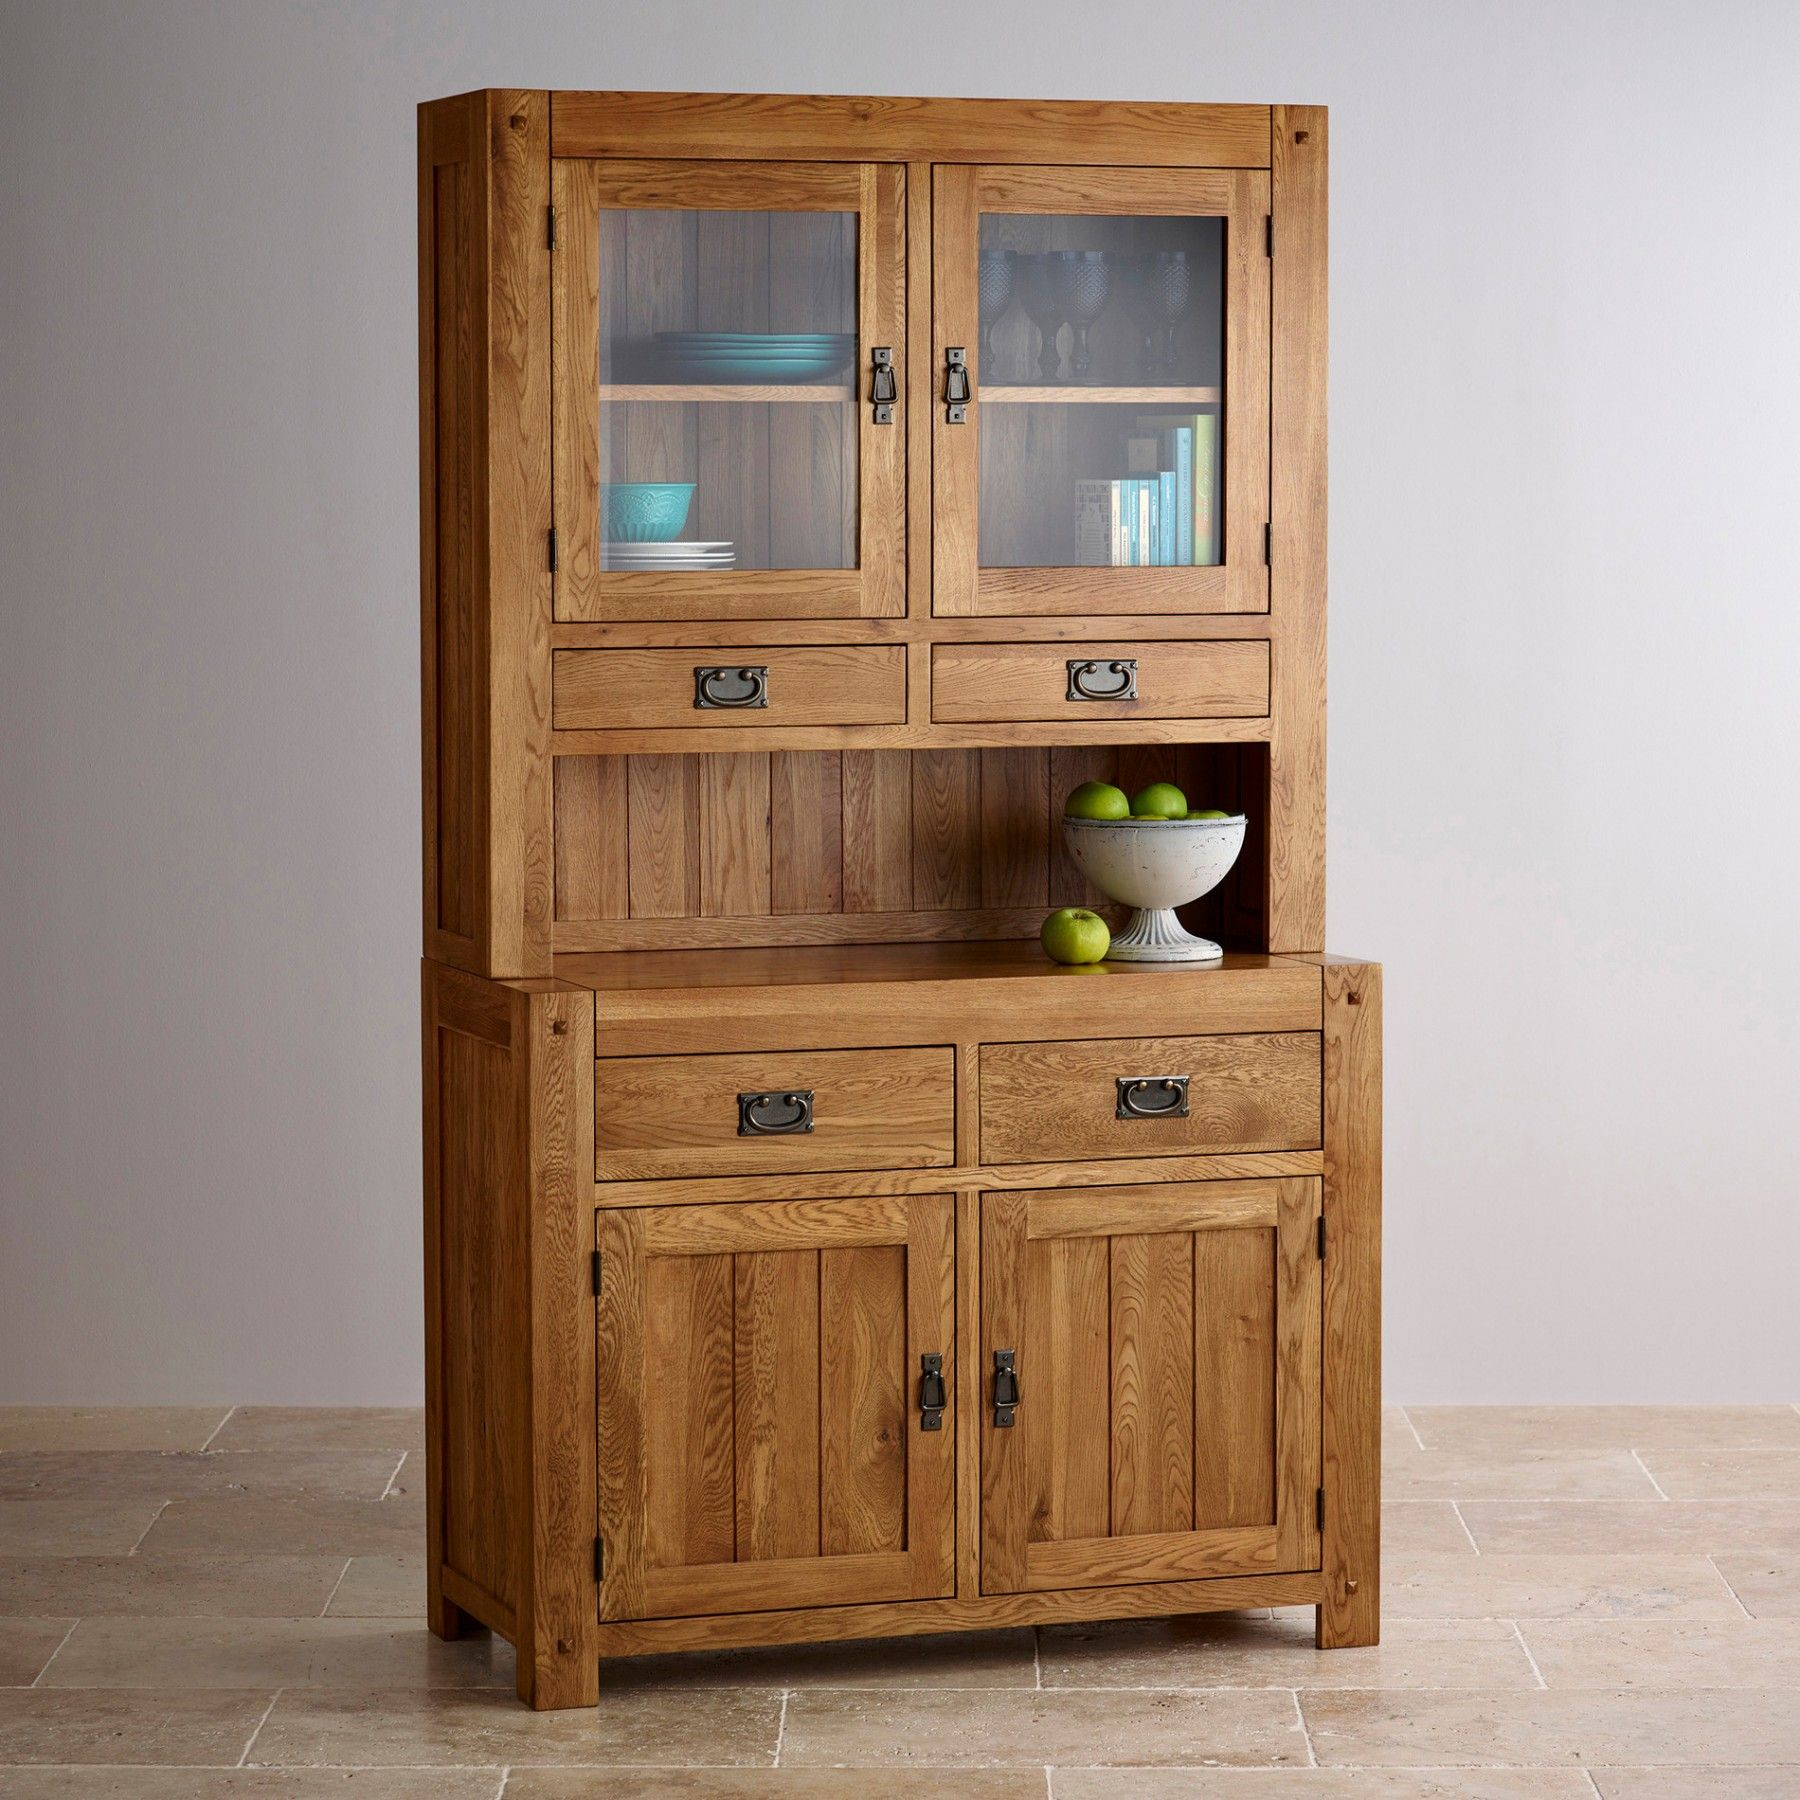 The Quercus Rustic Solid Oak Small Hutch Is Designed To Offer Interesting Small Hutches Dining Room Inspiration